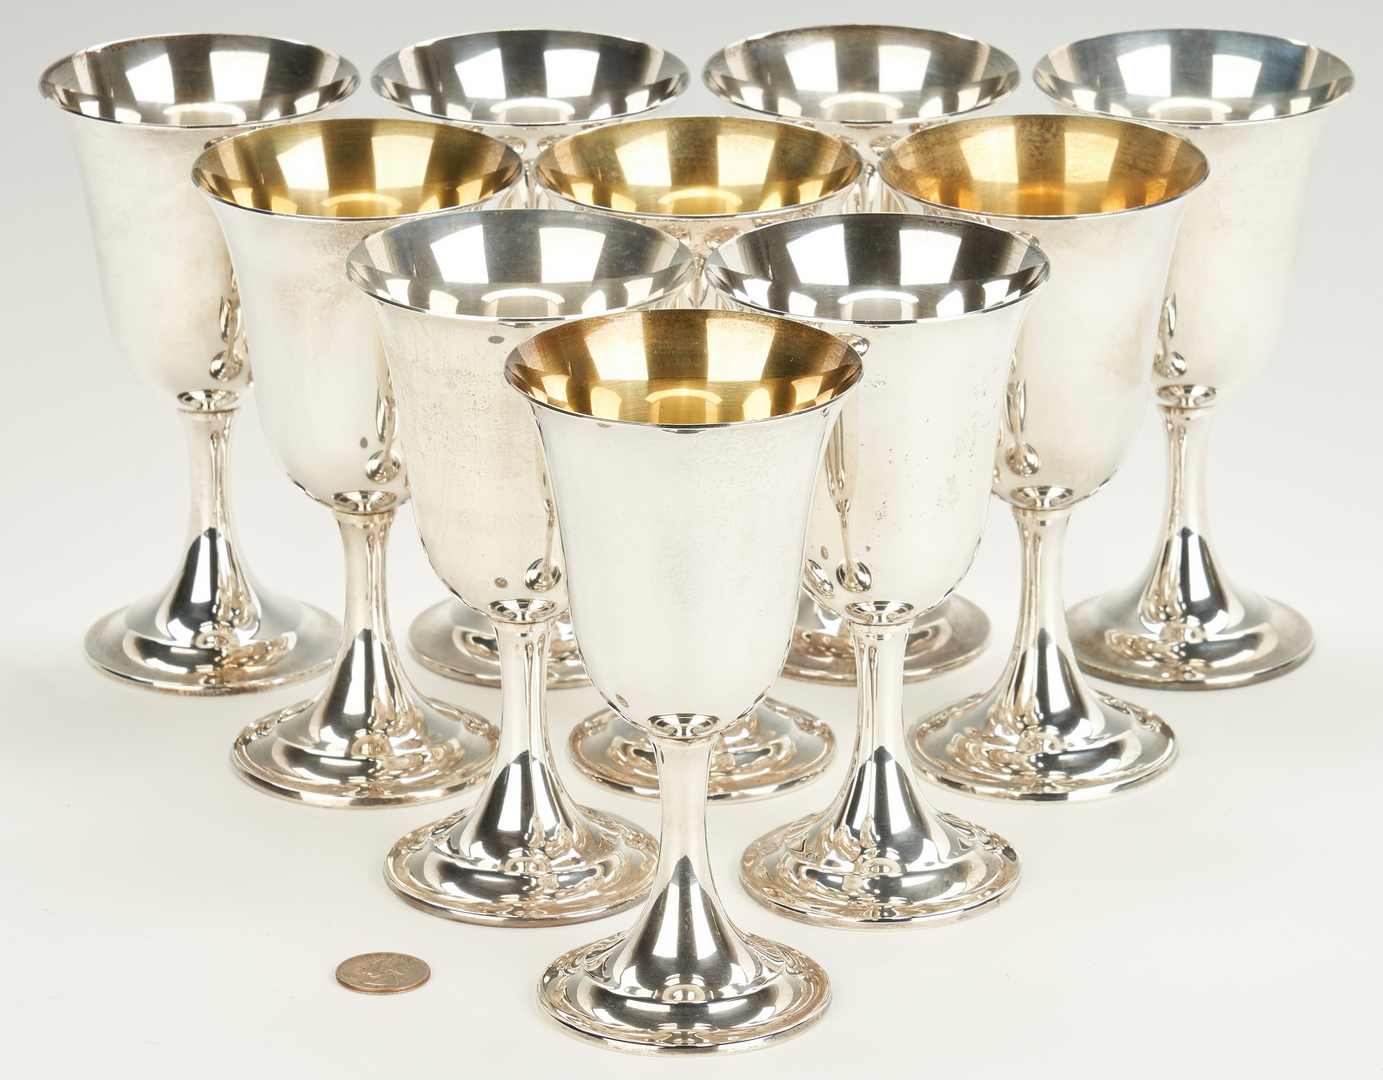 Lot 792: 10 International Lord Saybrook Sterling Goblets